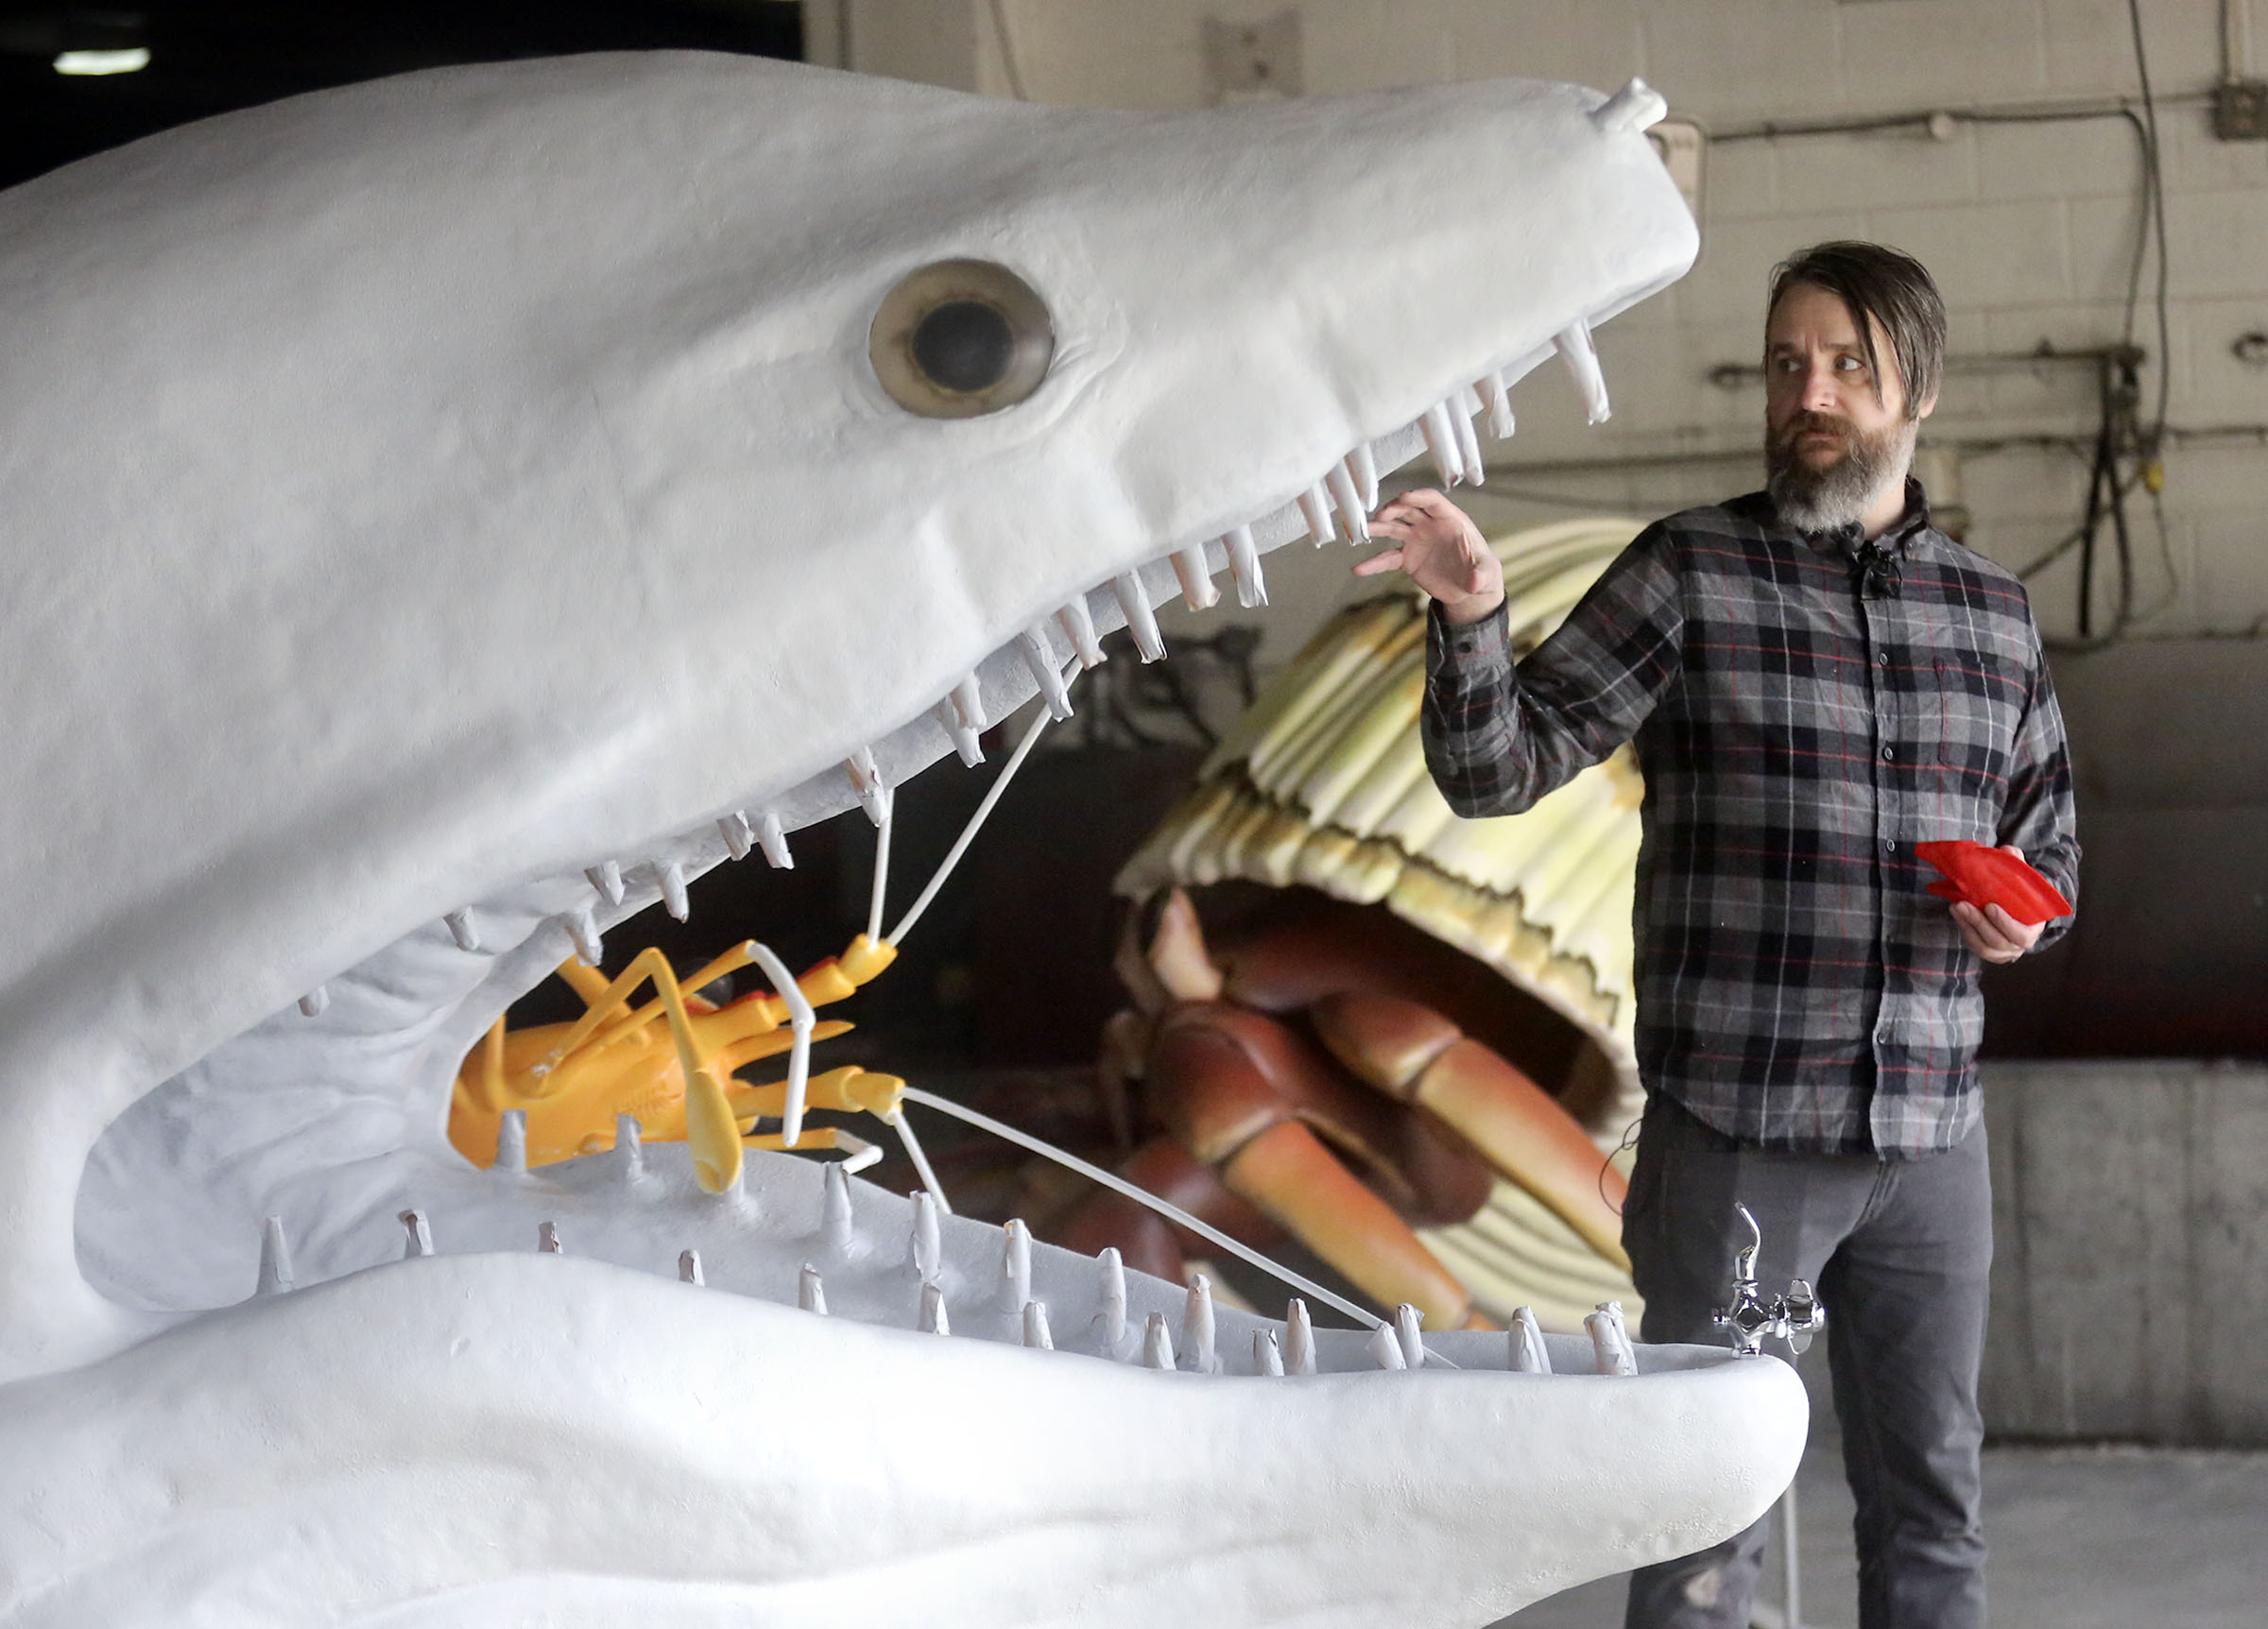 Wildlife sculptor Stephen Kesler, owner of Tusk Sculptures, talks about a sculpture of a honeycomb moray eel at his workshop in Salt Lake City on Tuesday, Feb. 18, 2020. The sculpture, which will also serve as a water fountain, will be displayed at the Loveland Living Planet Aquarium when it is finished.